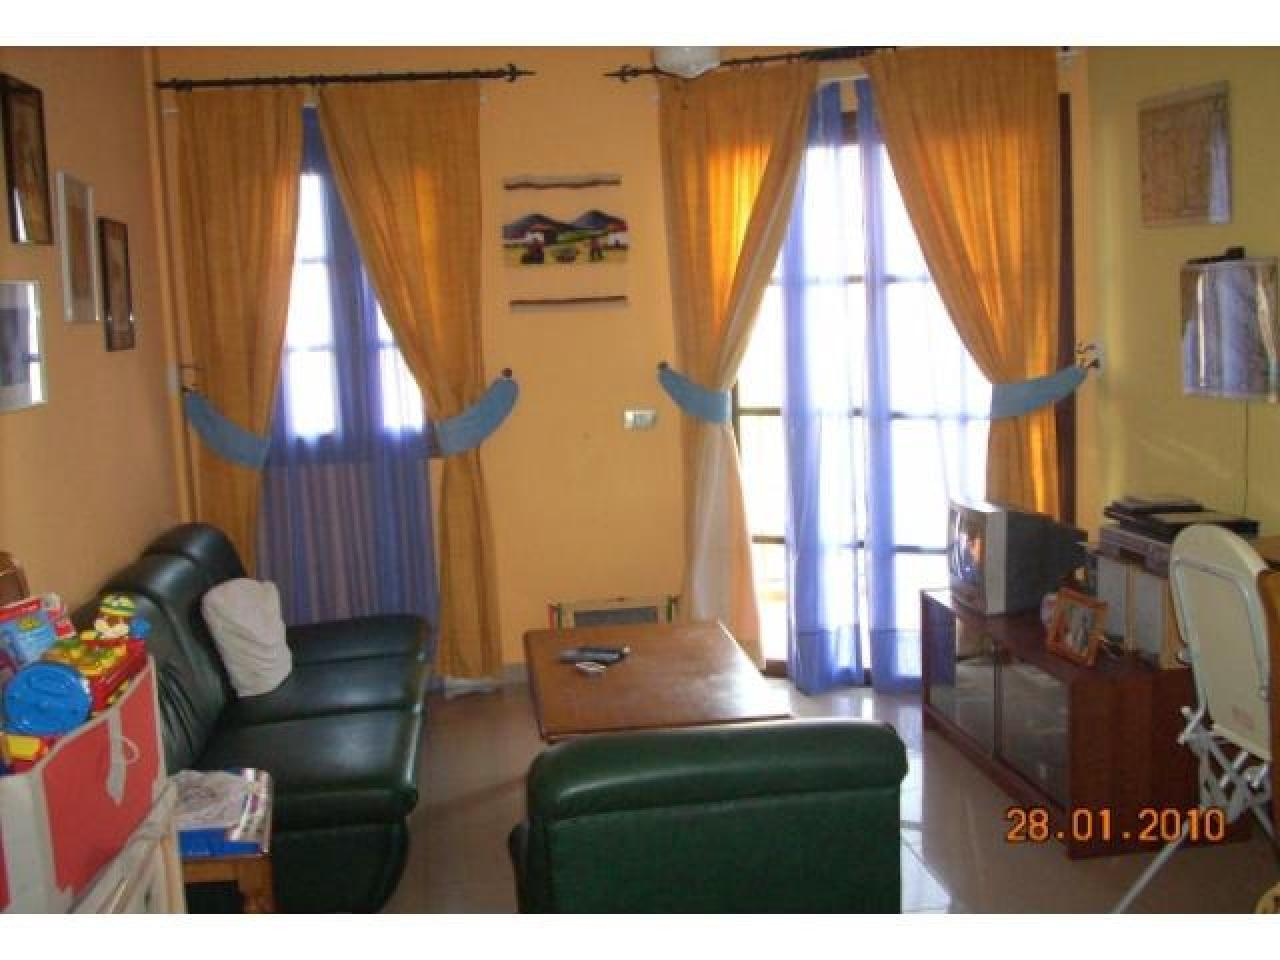 Real estate in Tenerife for sale » #138 - 1